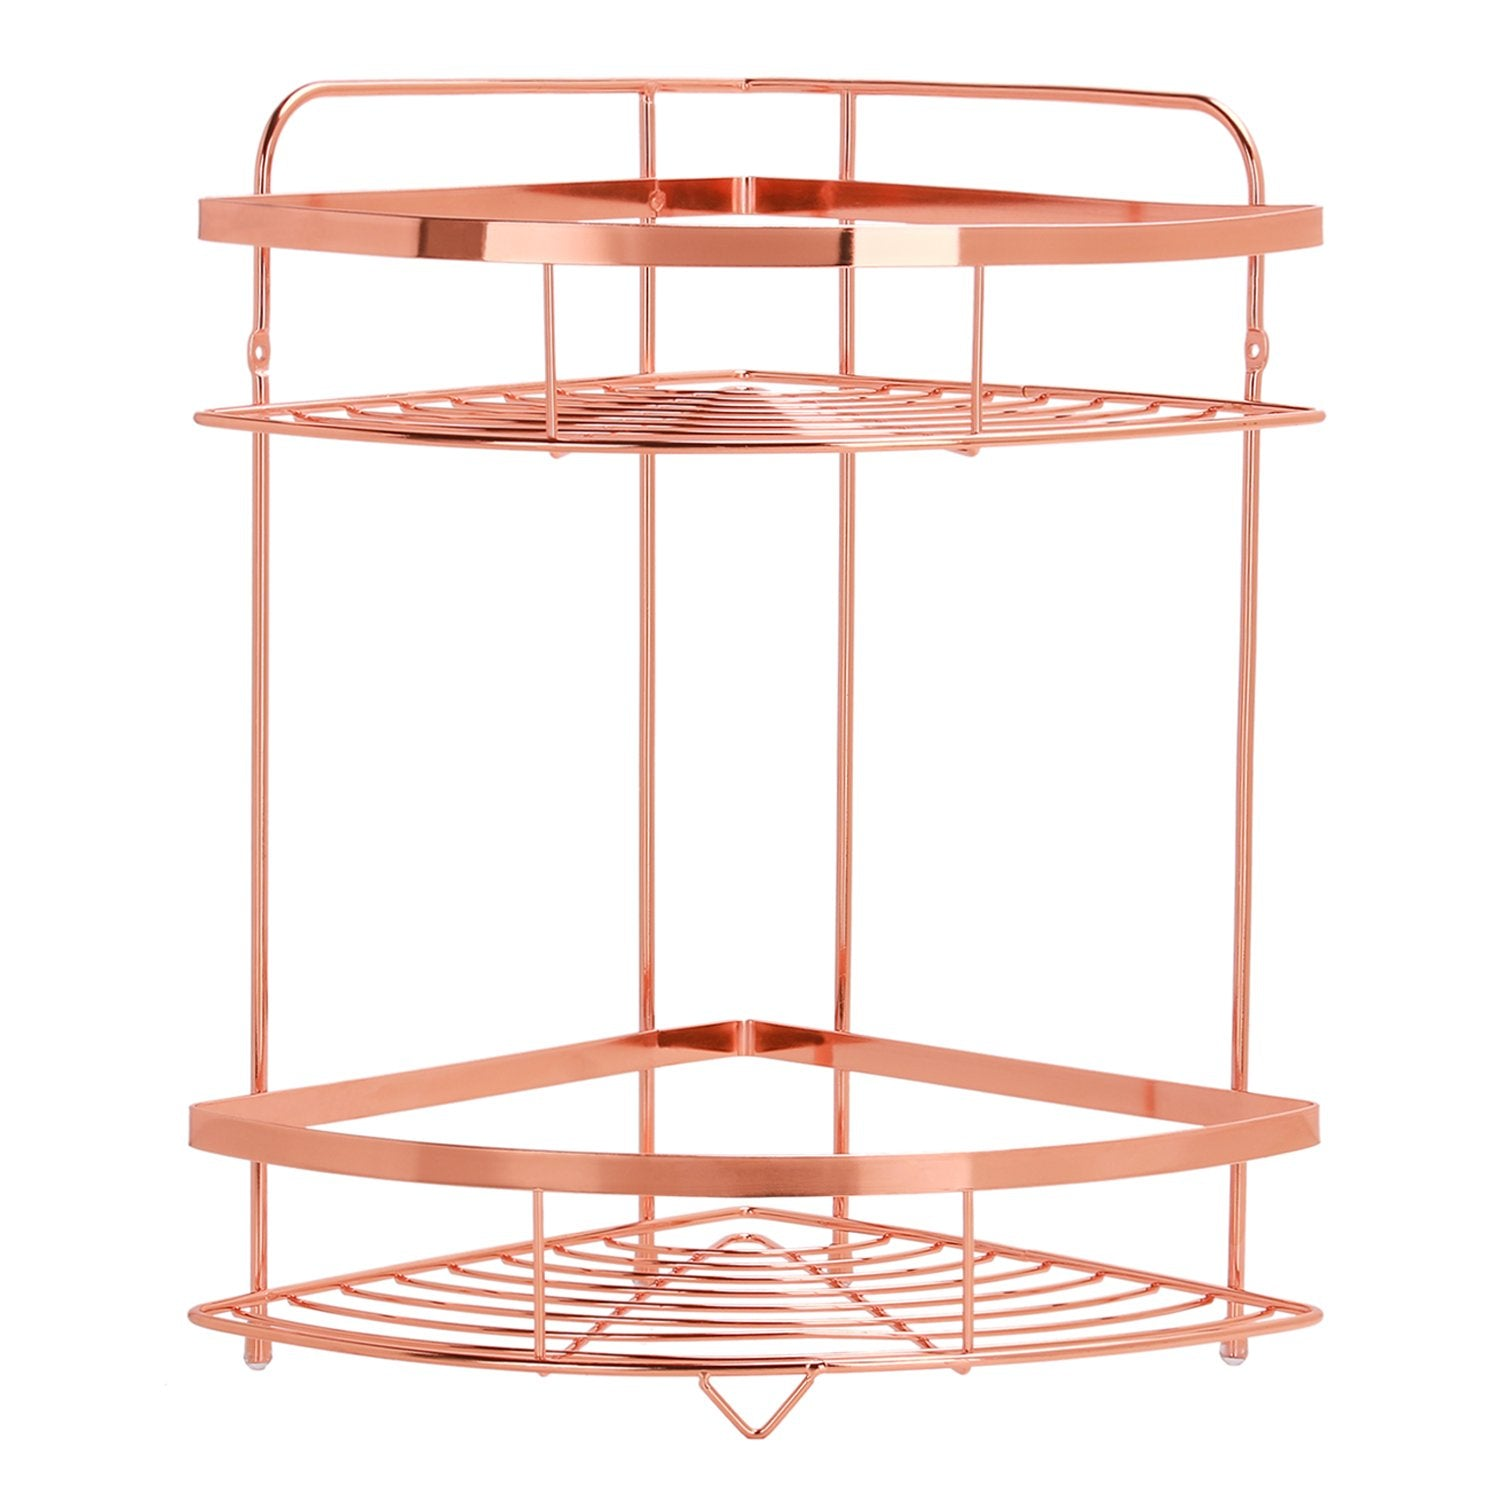 "Simmer Stone 2 Tier Corner Shelf, Wall Mount/Free Standing Home & Kitchen Storage Rack Spice Rack for Corner, Size 9.5""X9.5""X14.5""(LxWxH), Copper"